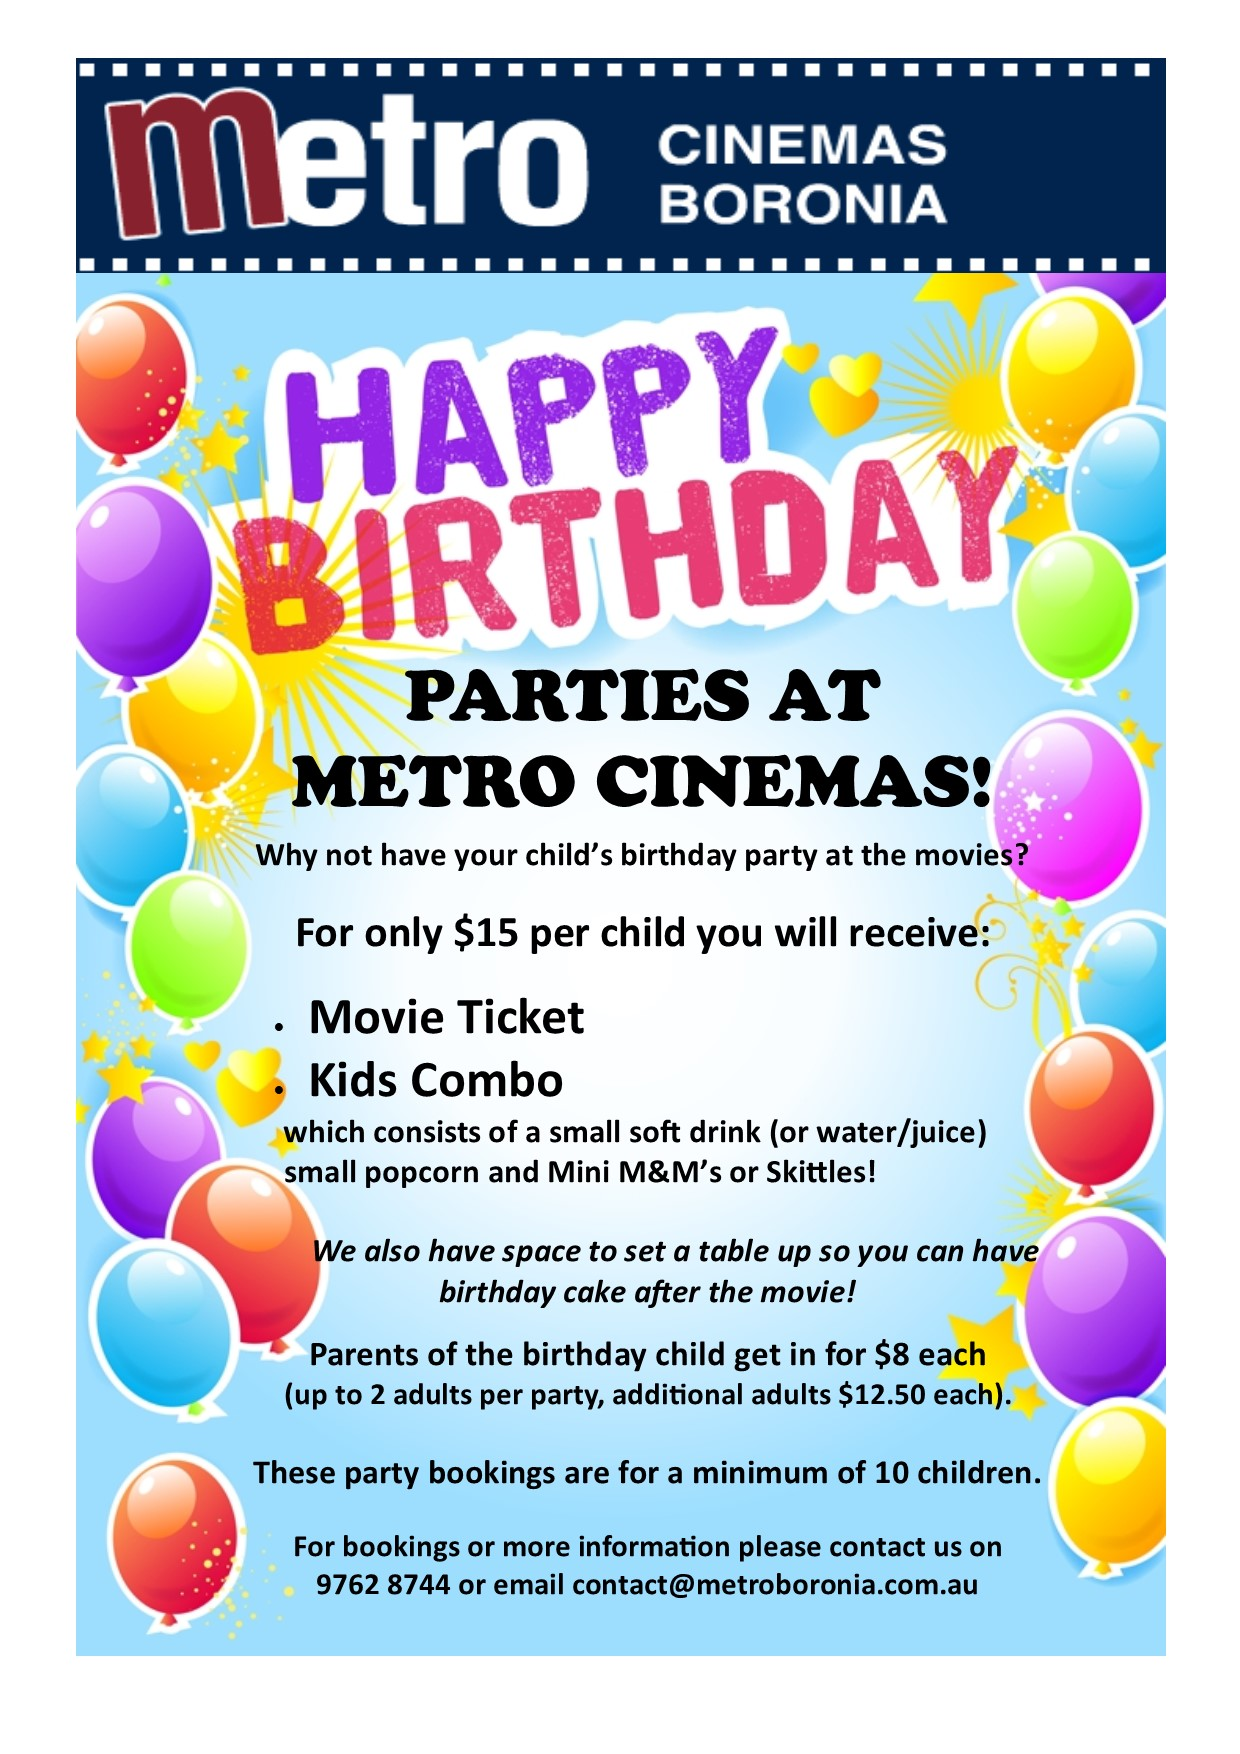 Metro Cinemas Boronia Birthday Party Info